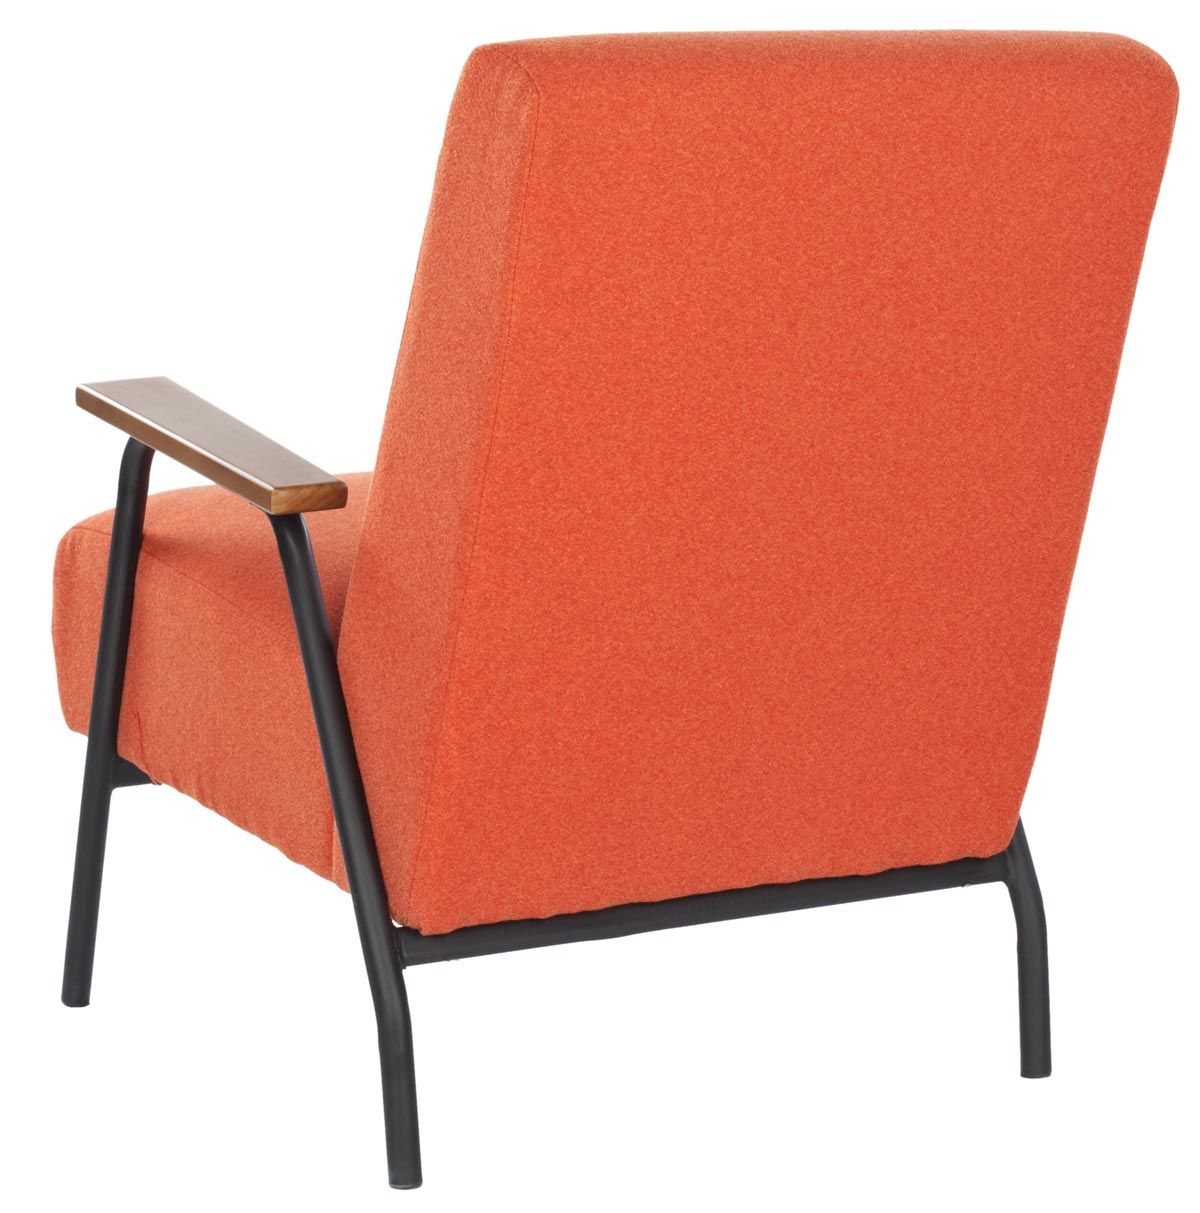 Safavieh - MCR4606B REUBEN ARM CHAIR - ORANGE